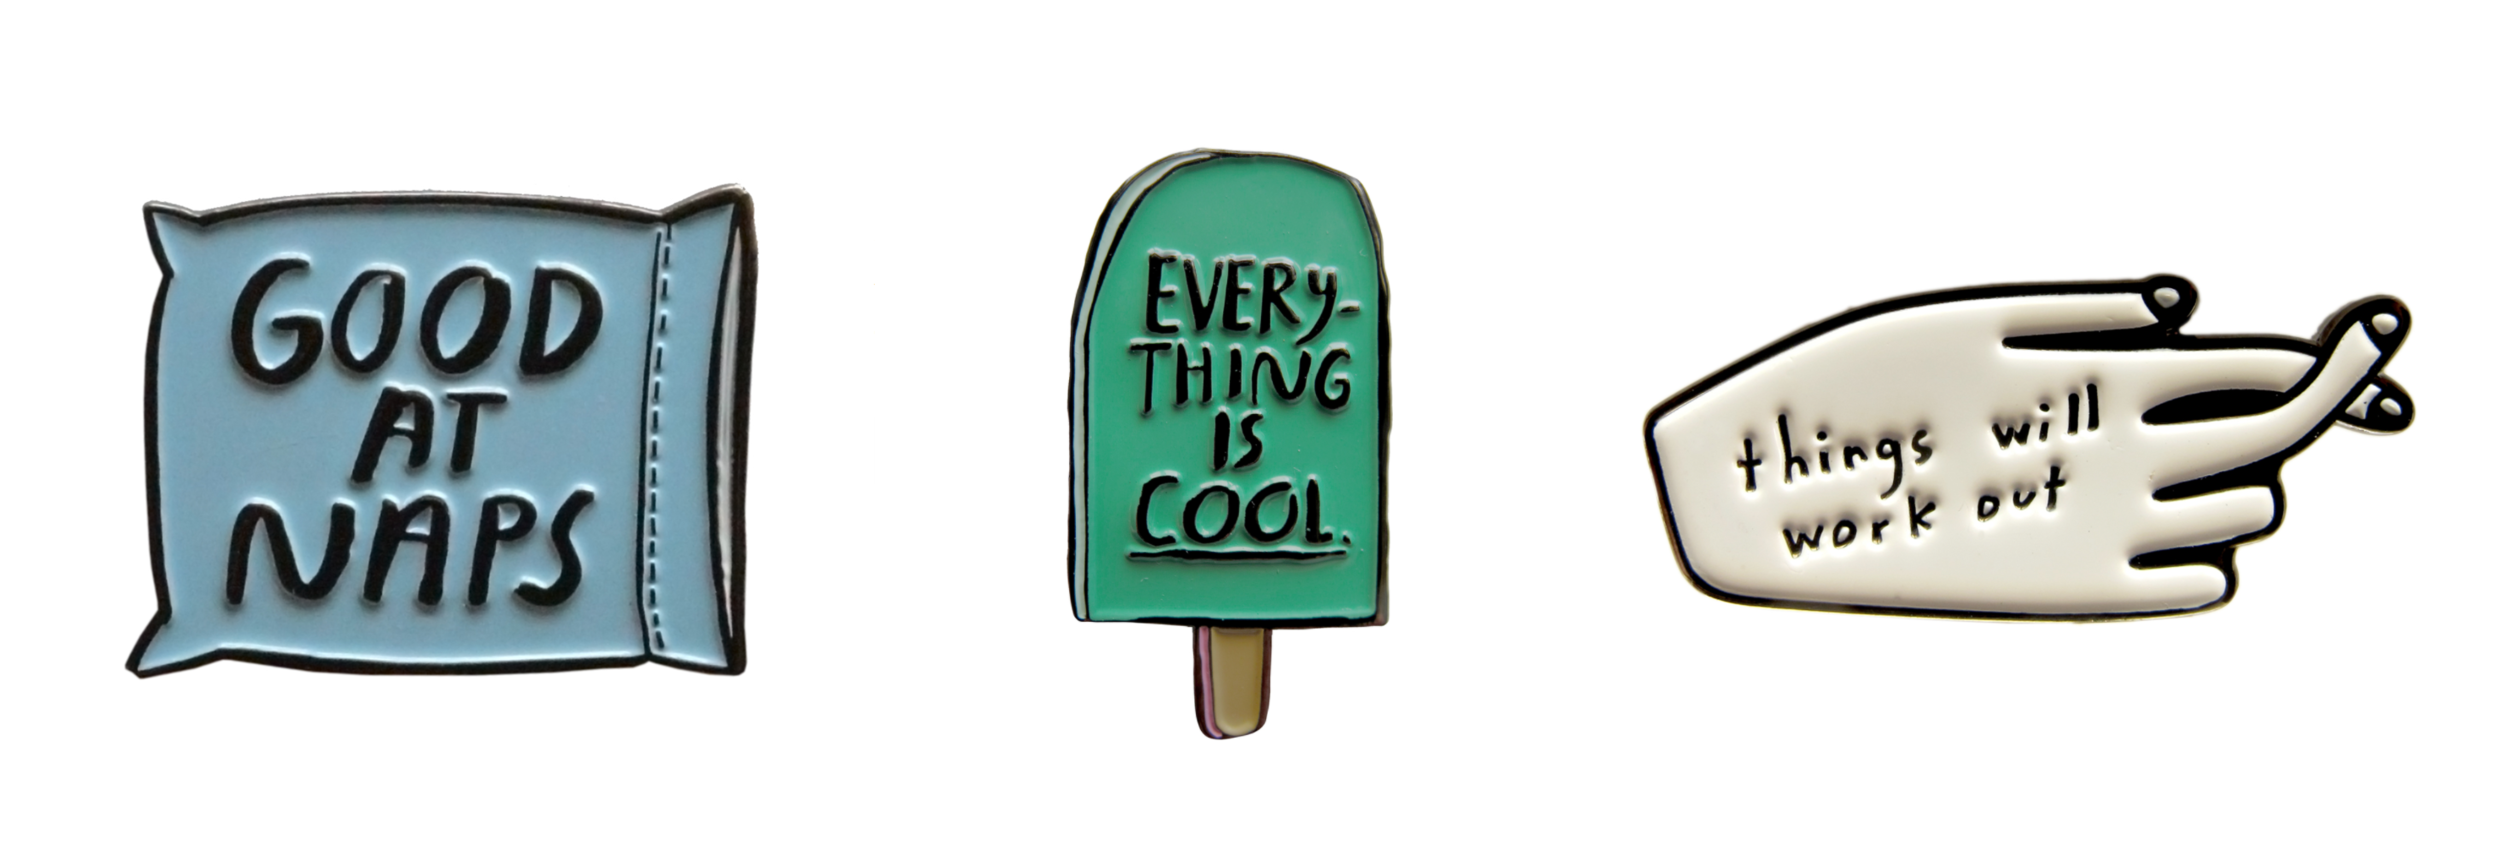 funny trendy cool enamel pins